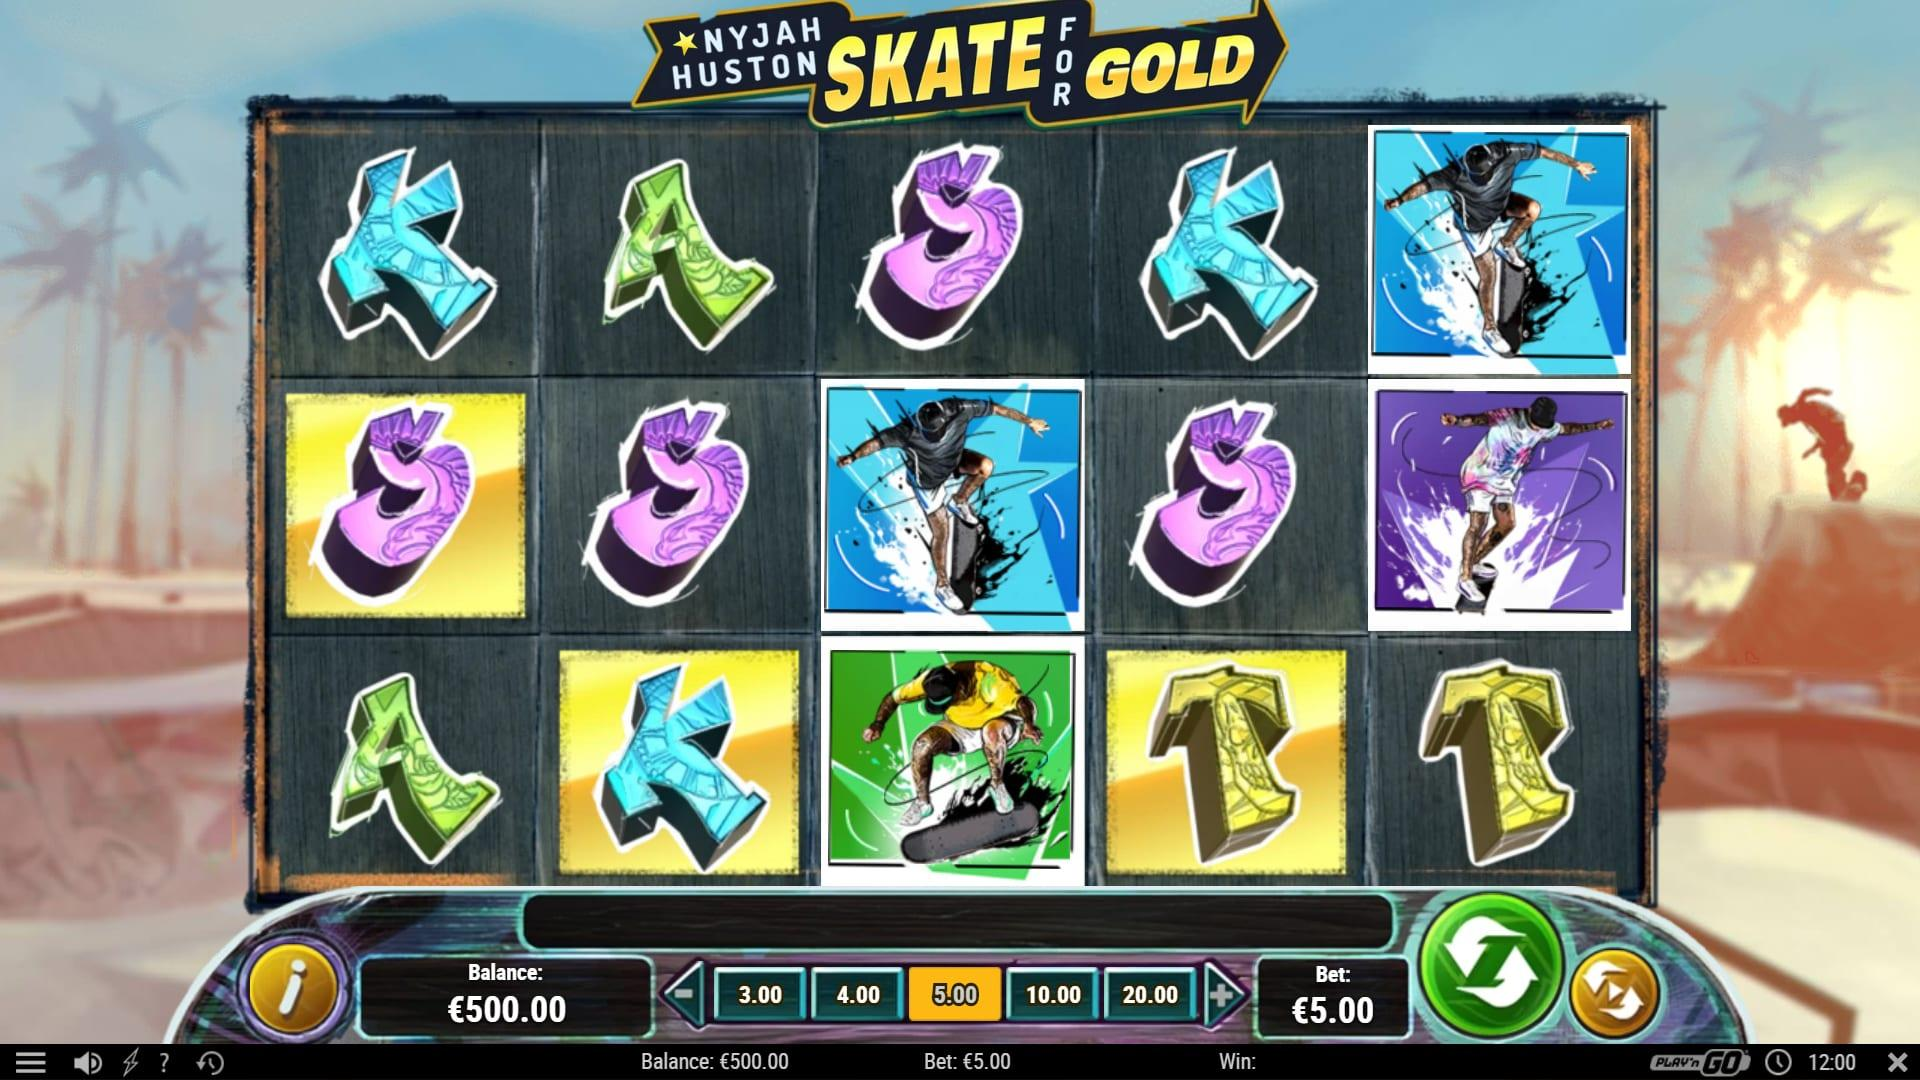 Nyjah Huston Skate for Gold Symbols: Some of the letters in the game have a golden background.